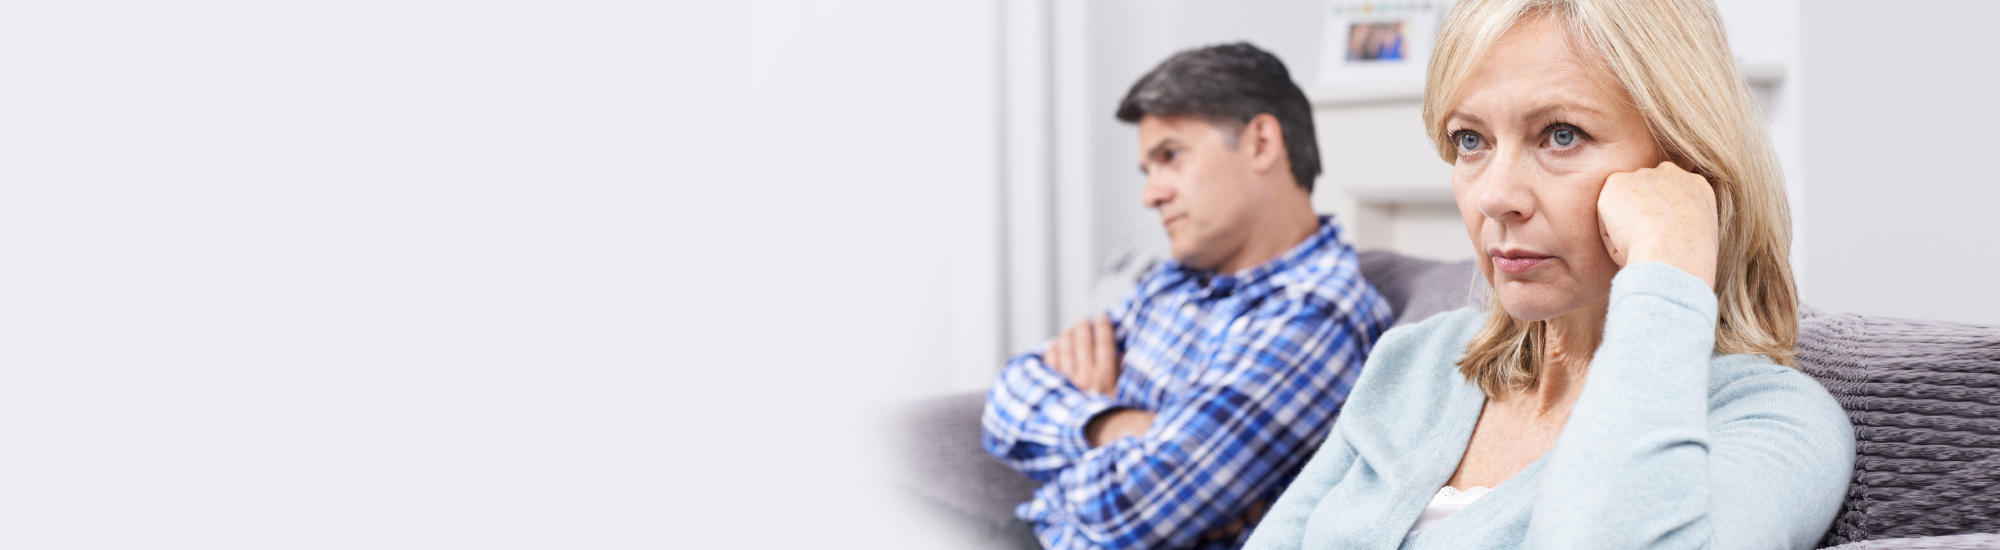 Ayurvedic treatment for Male menopause-Andropause FAQs